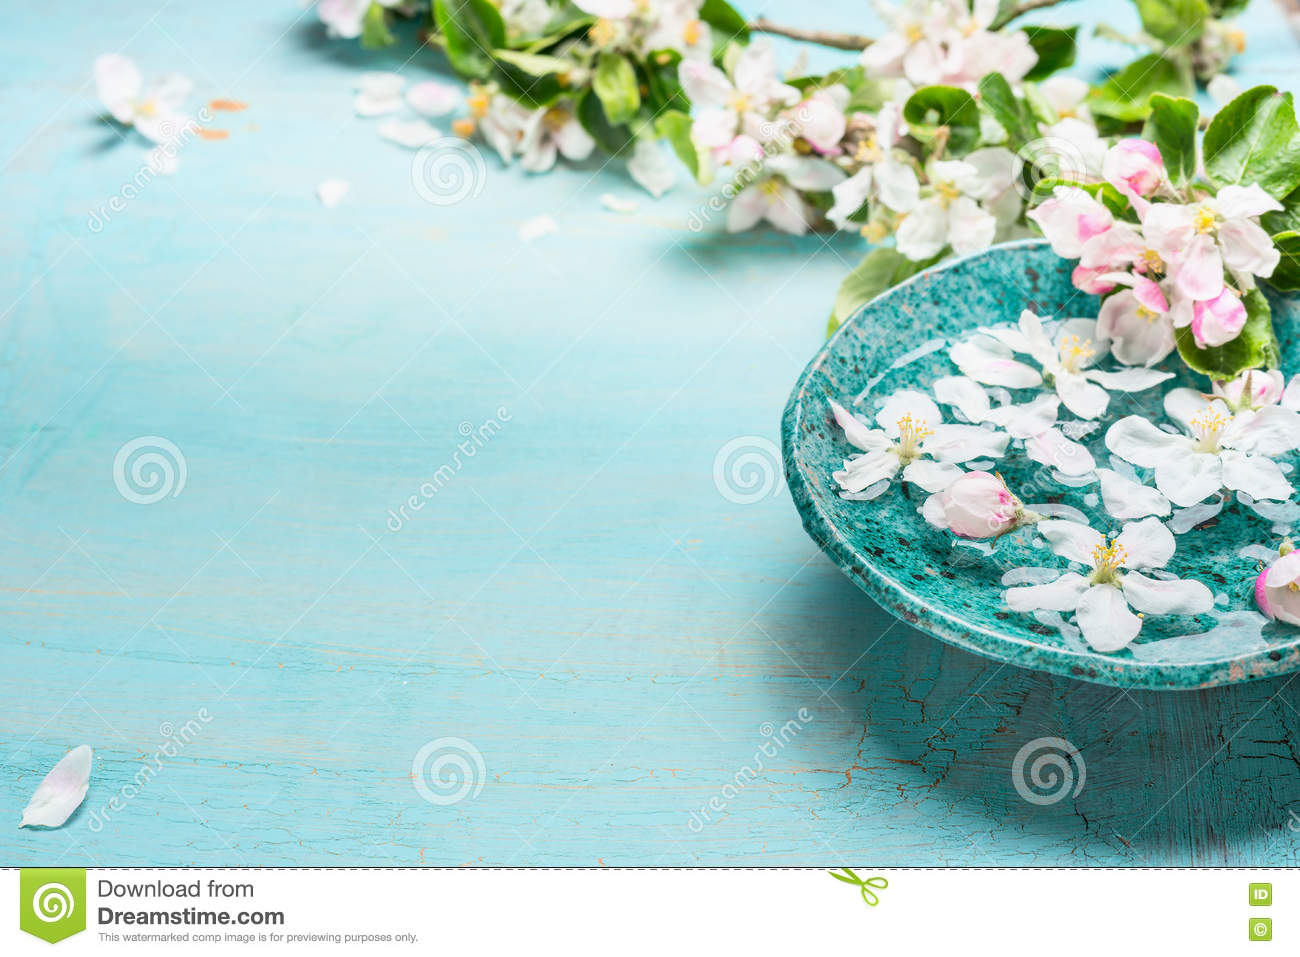 Aroma bowl with water and white blossom flowers on for Salon turquoise